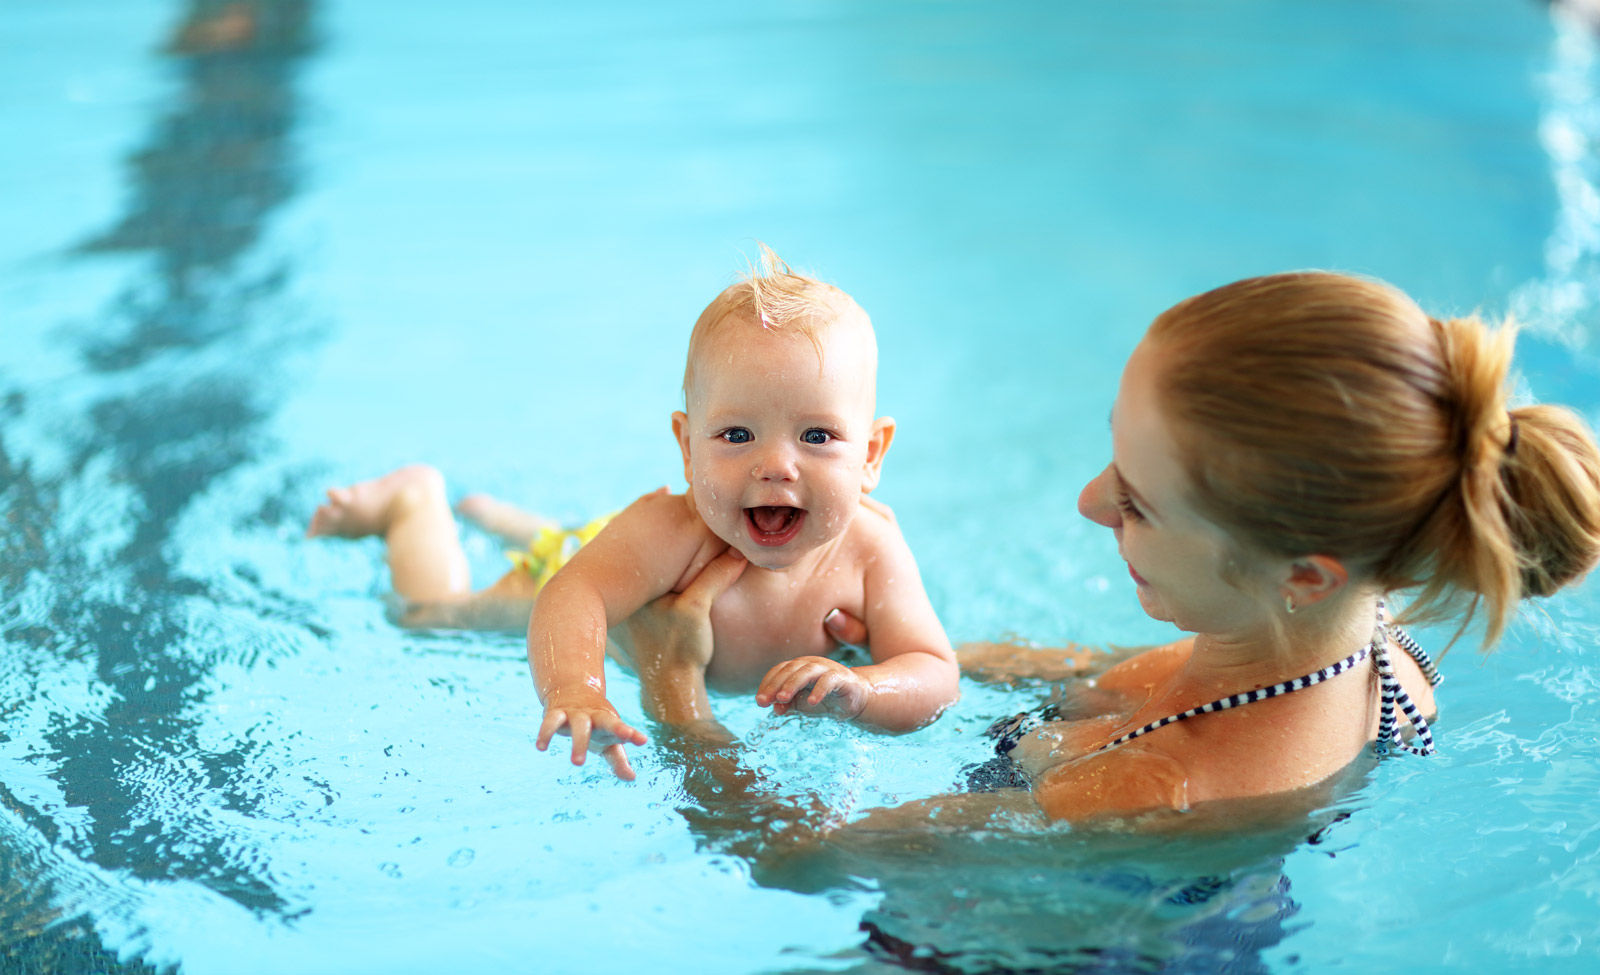 Don't forget to pack swim diapers if you are staying at a Regina hotel with a swimming pool.